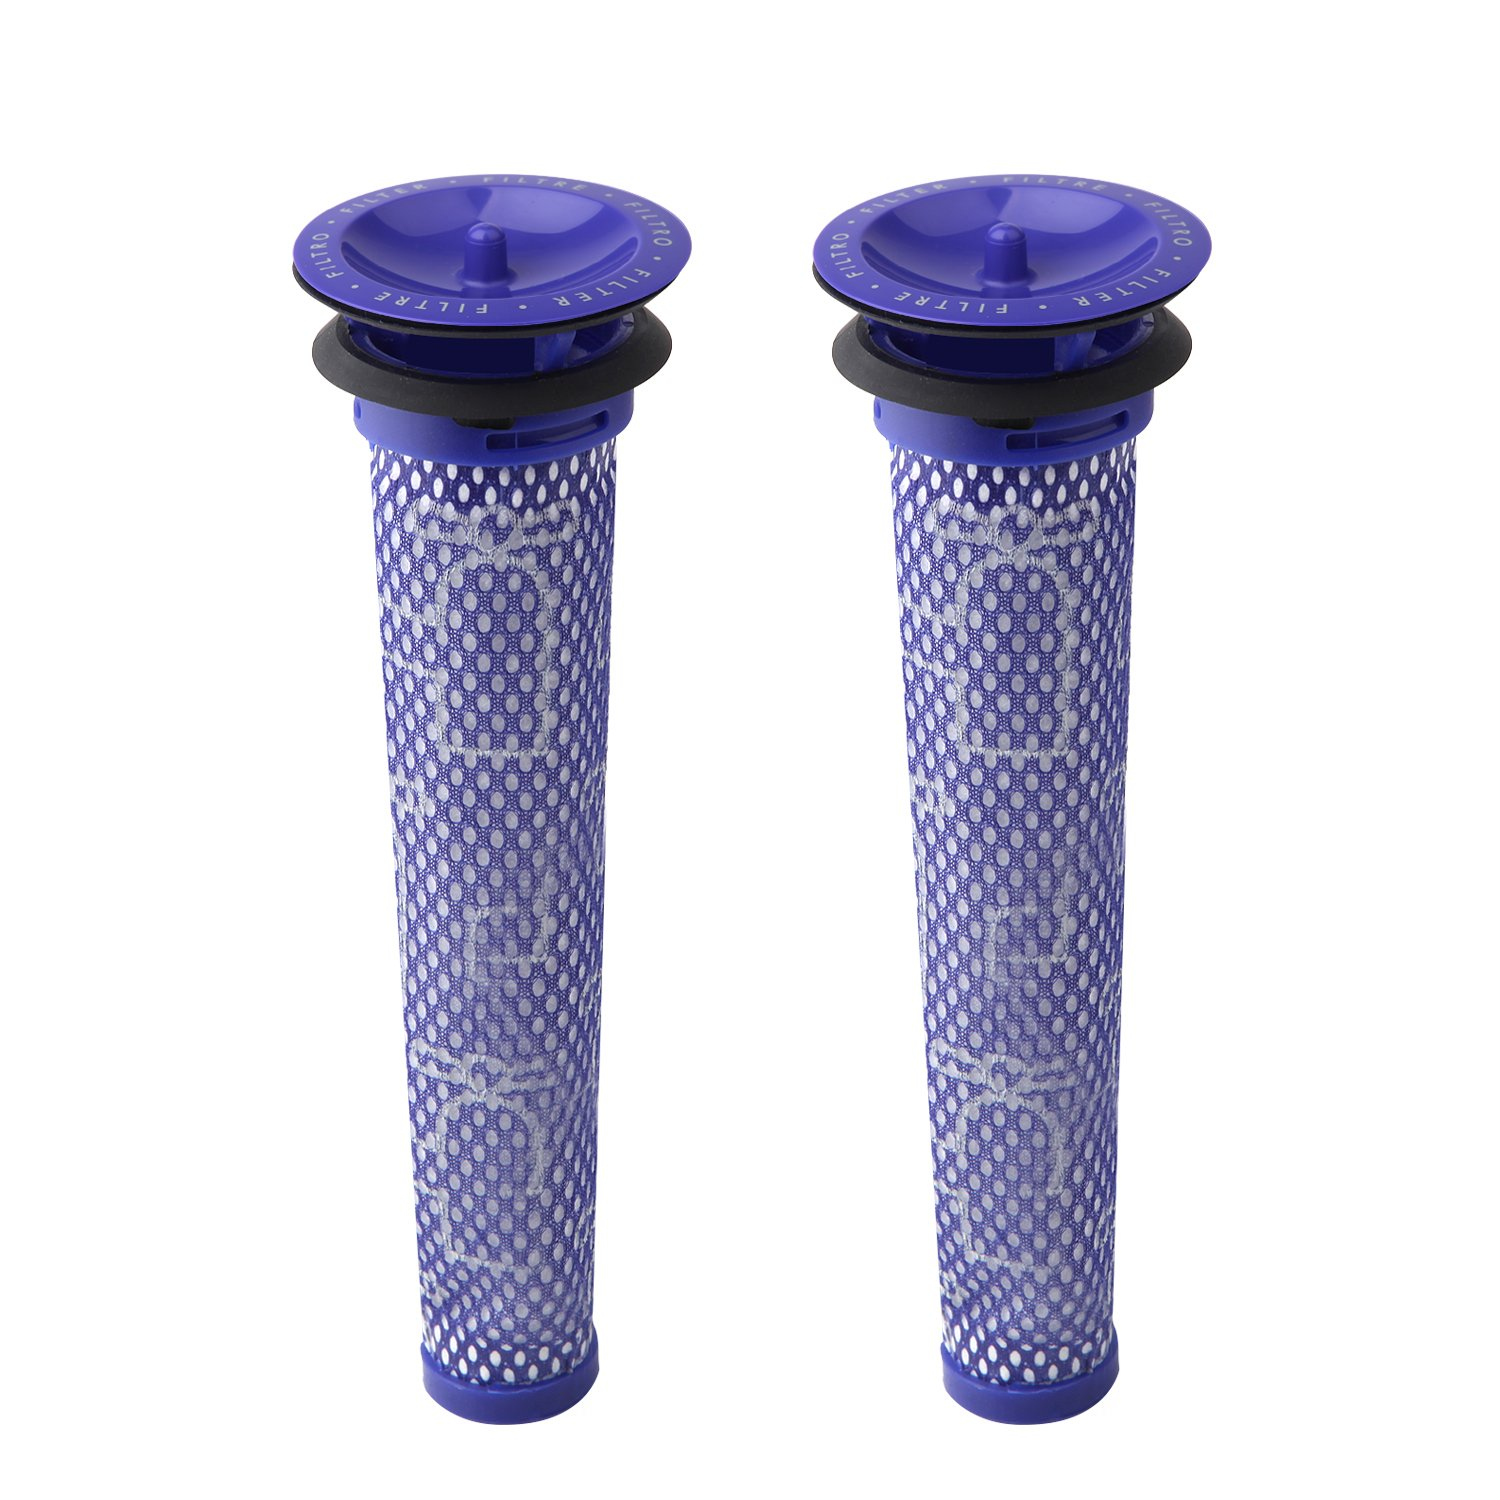 2 Pack Replacement Pre Filters for Dyson DC58, DC59, V6, V7, V8. Replaces Part # 965661-01. 2 Filters